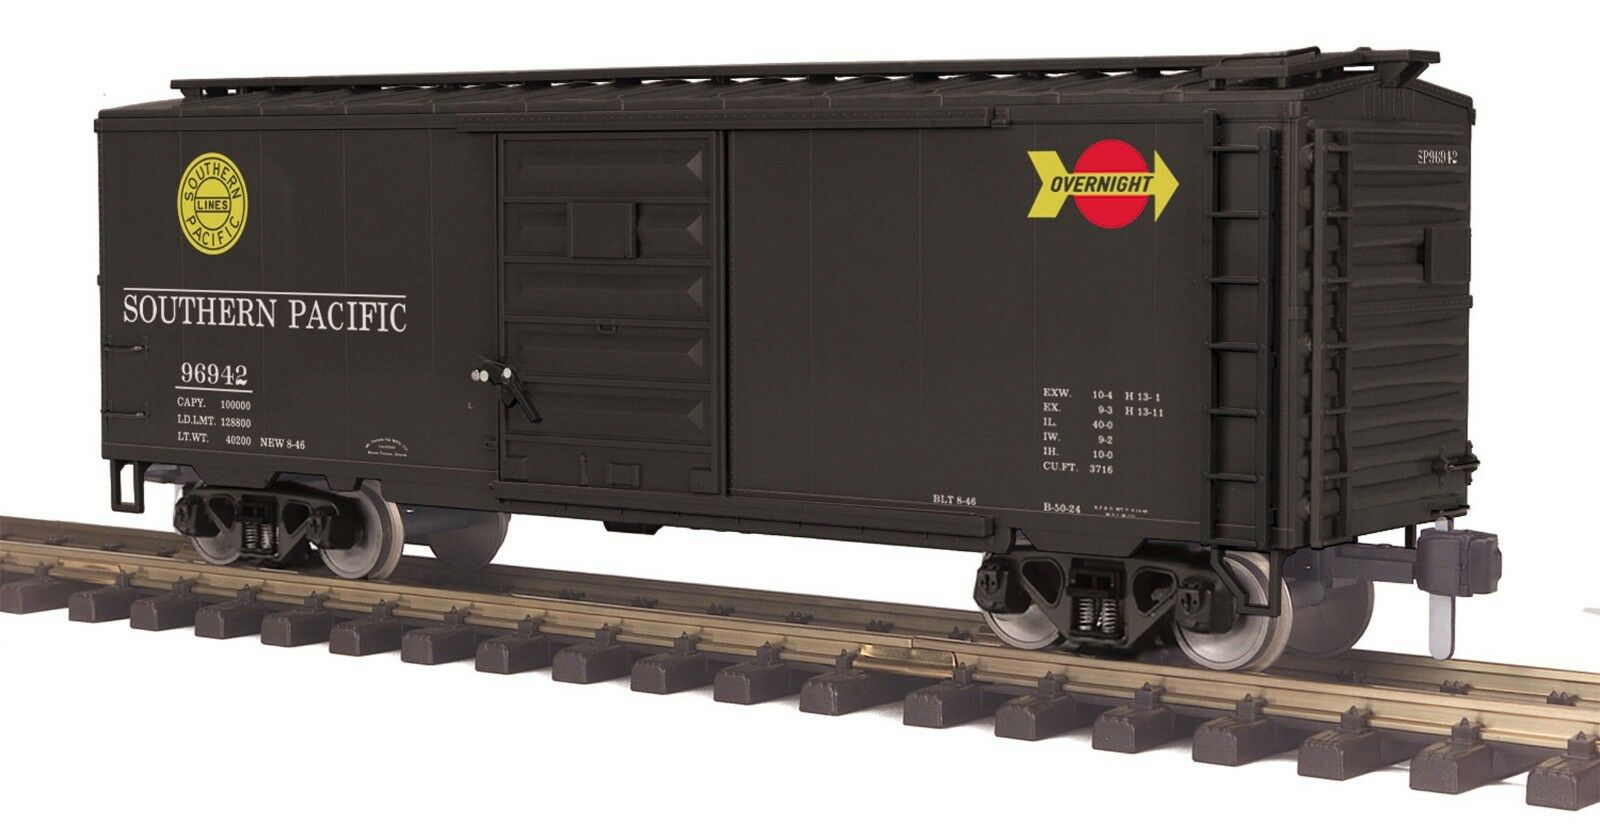 70-74099 MTH ONE-GAUGE Southern Pacific () [Overnight] 40' Box Car